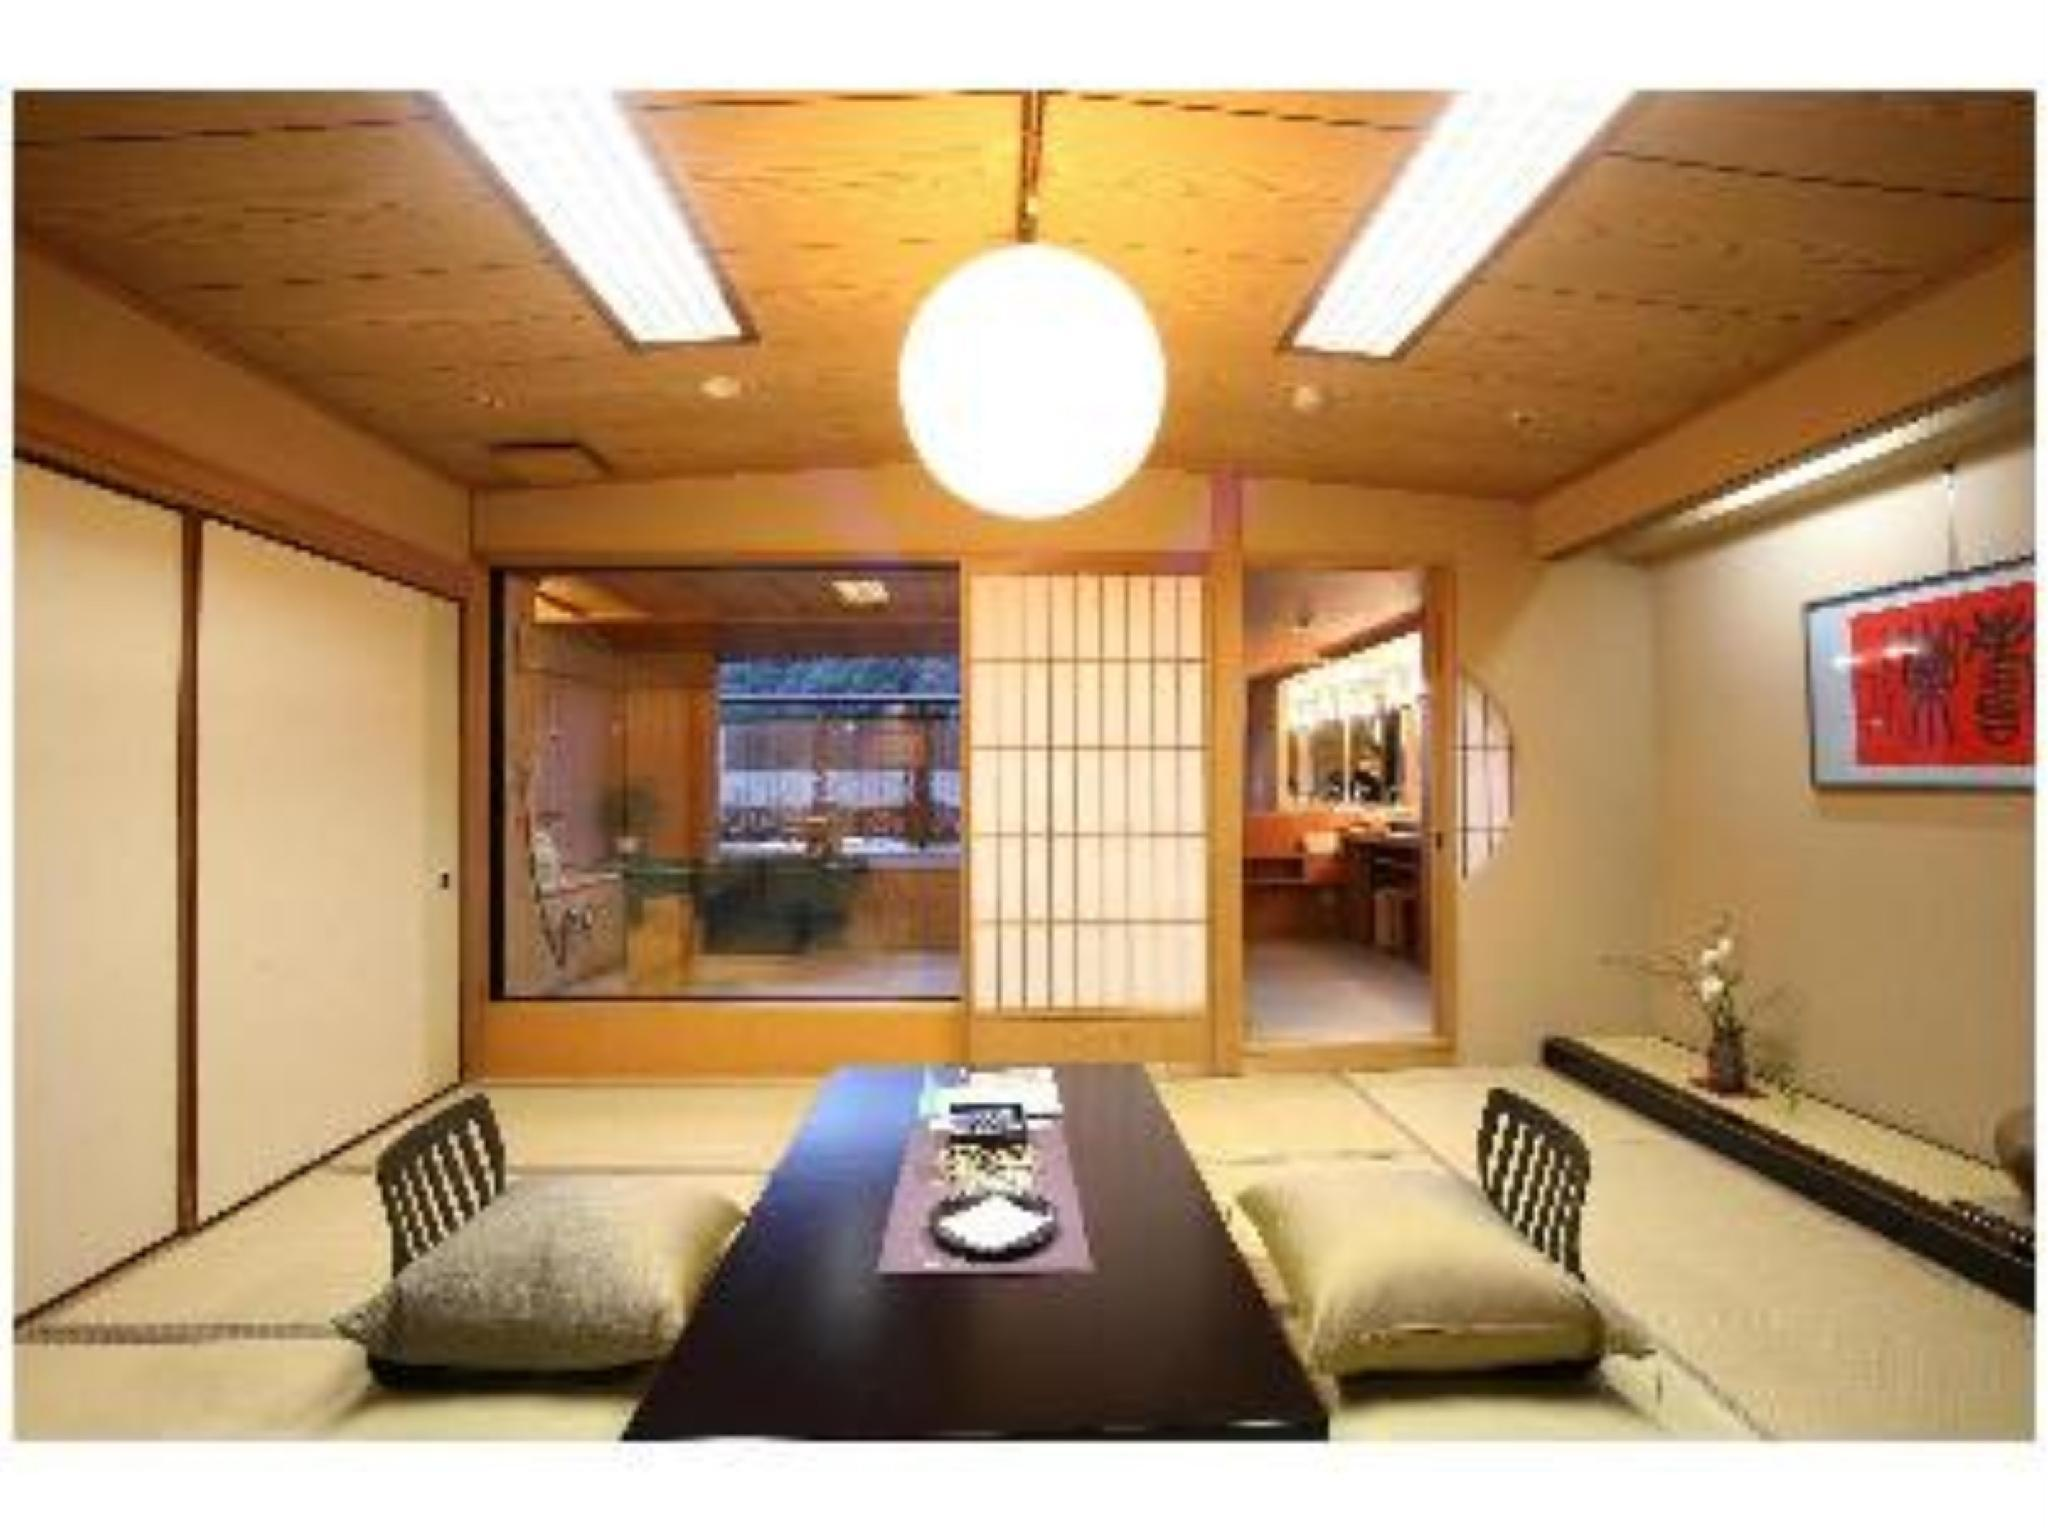 다다미 객실(산스이관/노천탕) (Japanese-style Room with Open-air Bath (Sansui Wing))